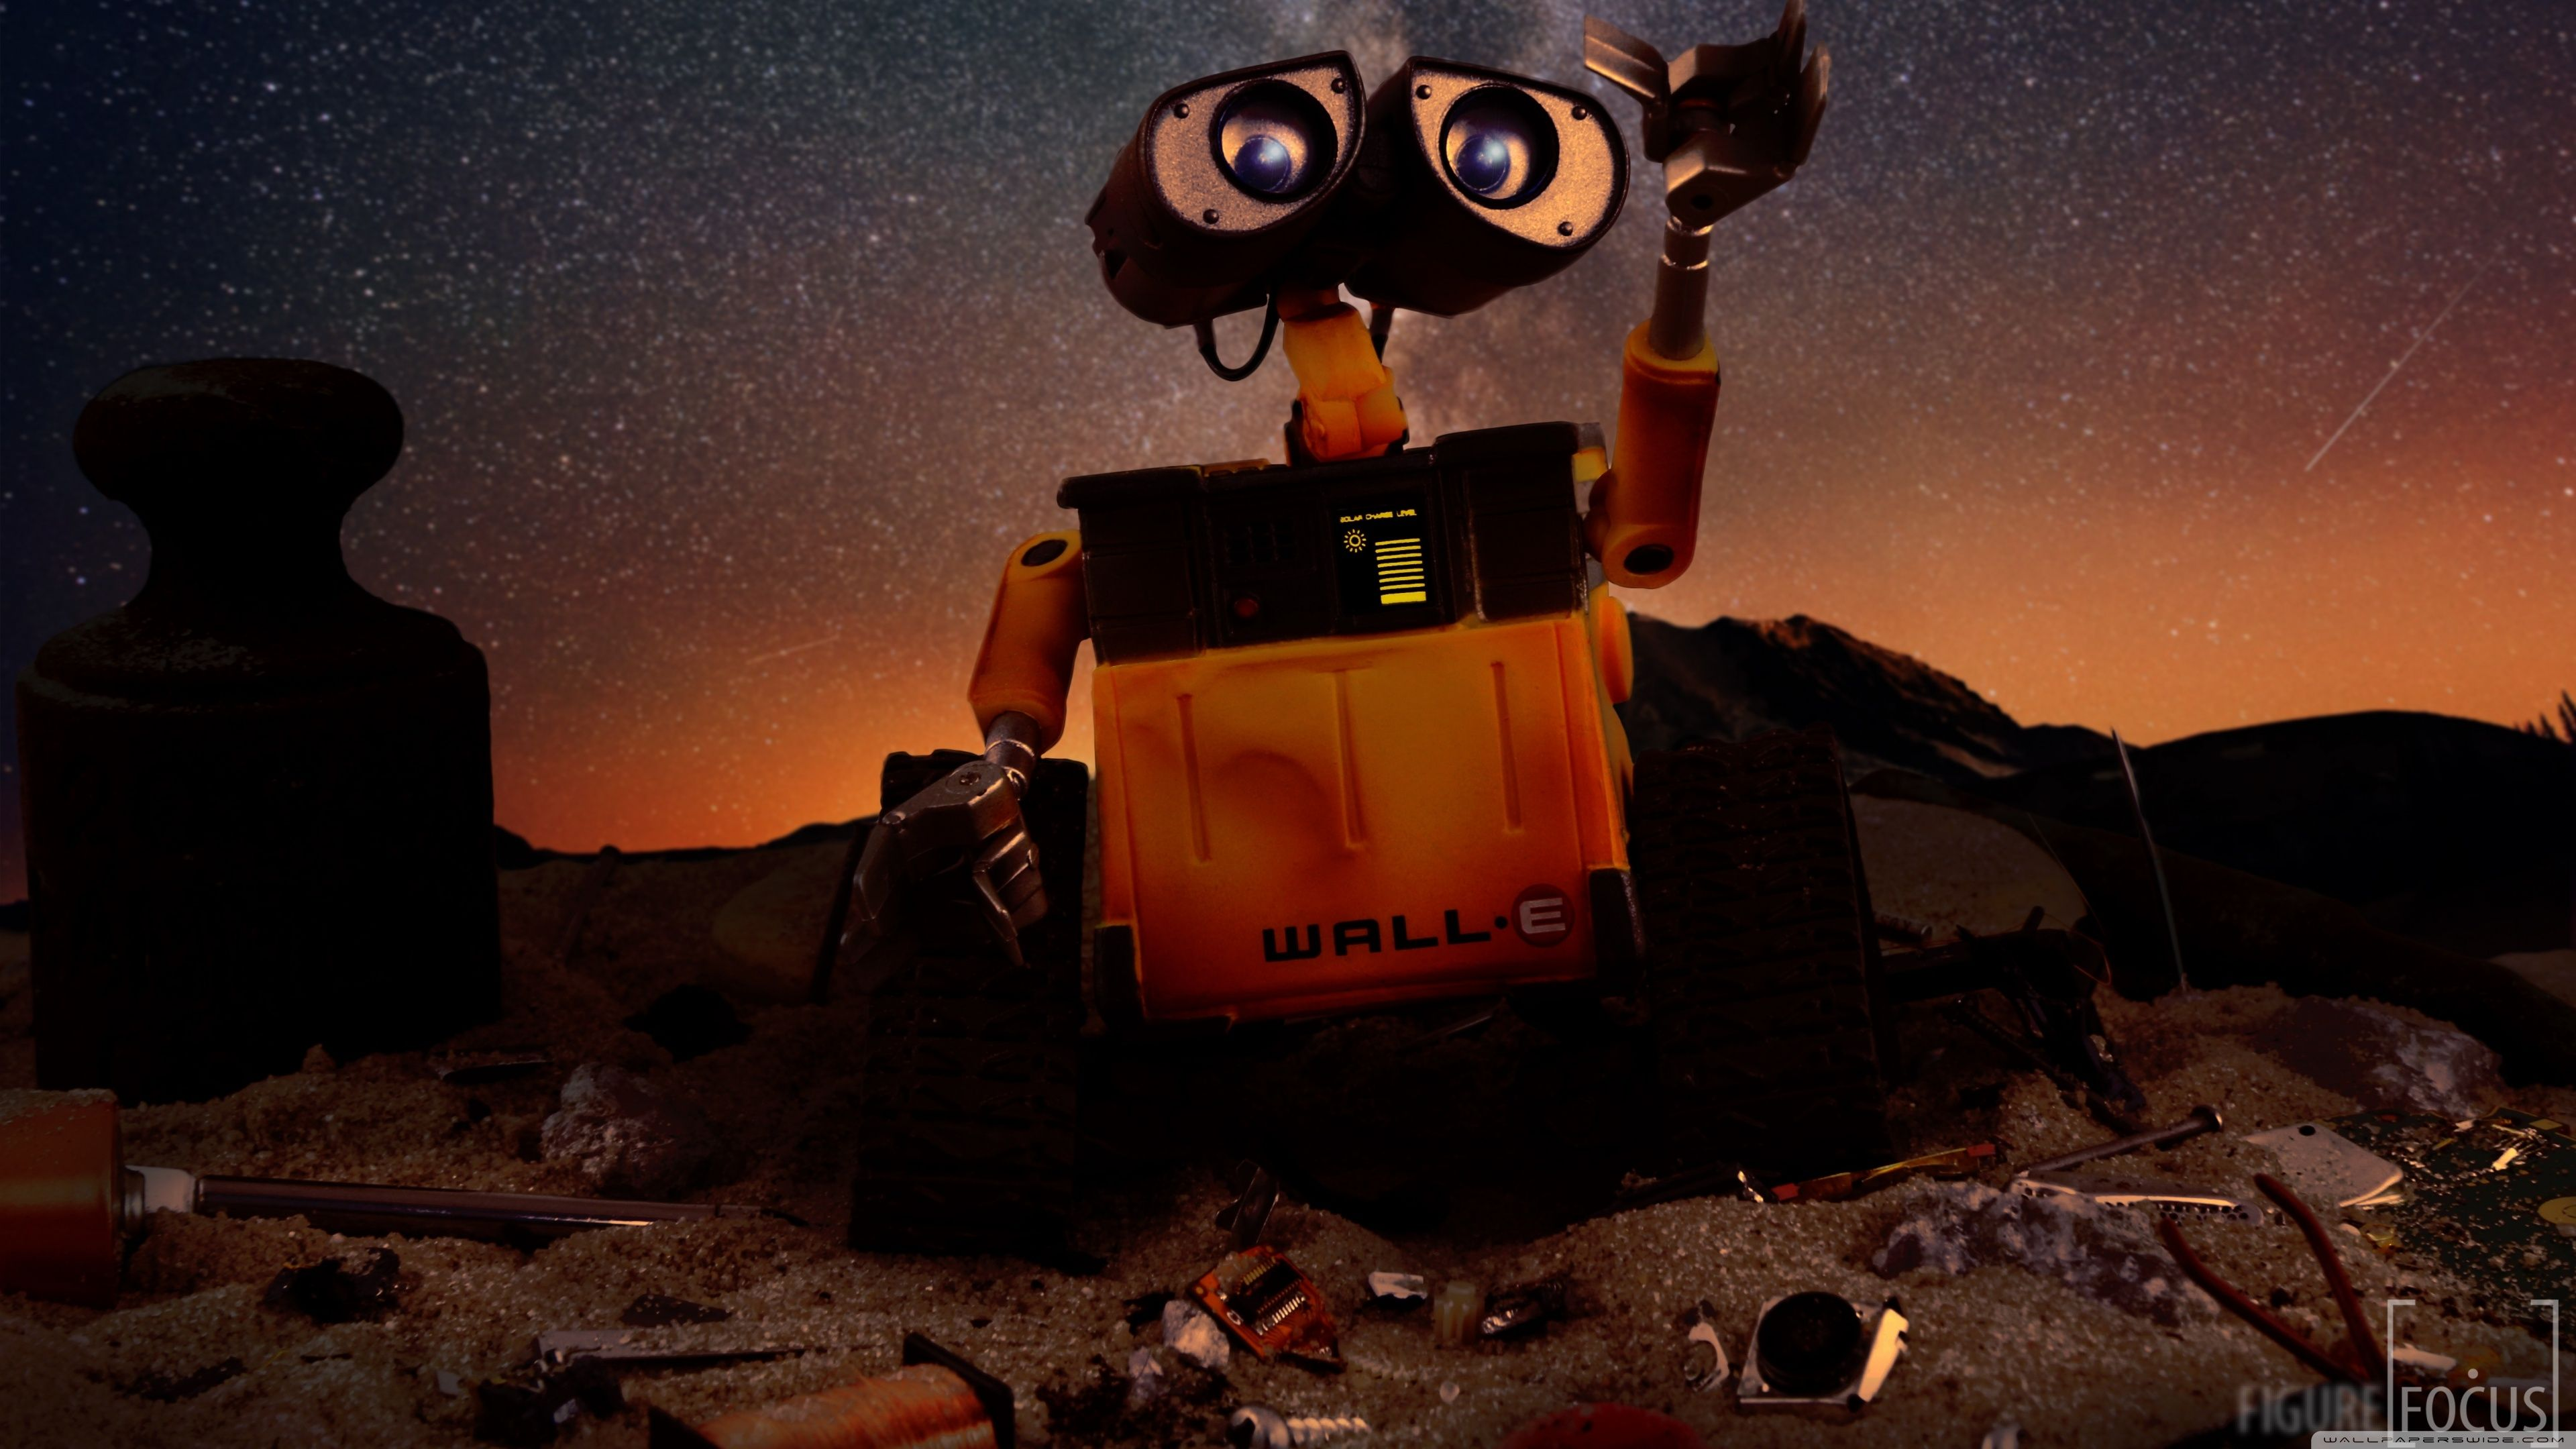 WALL-E Robot HD desktop wallpaper ...